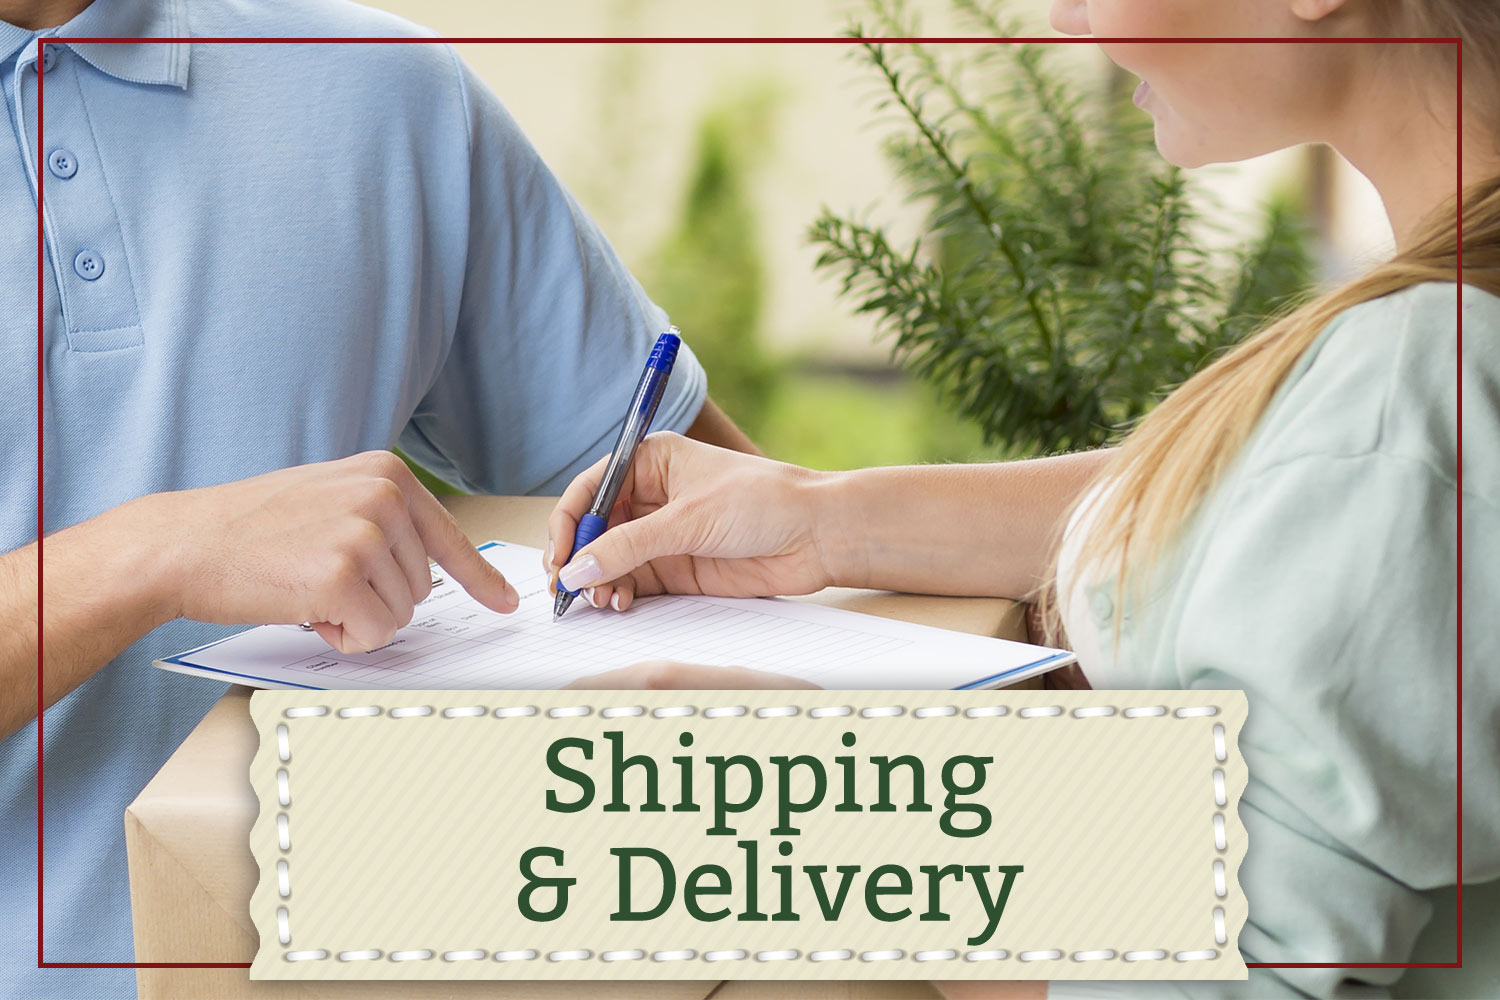 shipping-and-delivery-service.jpg